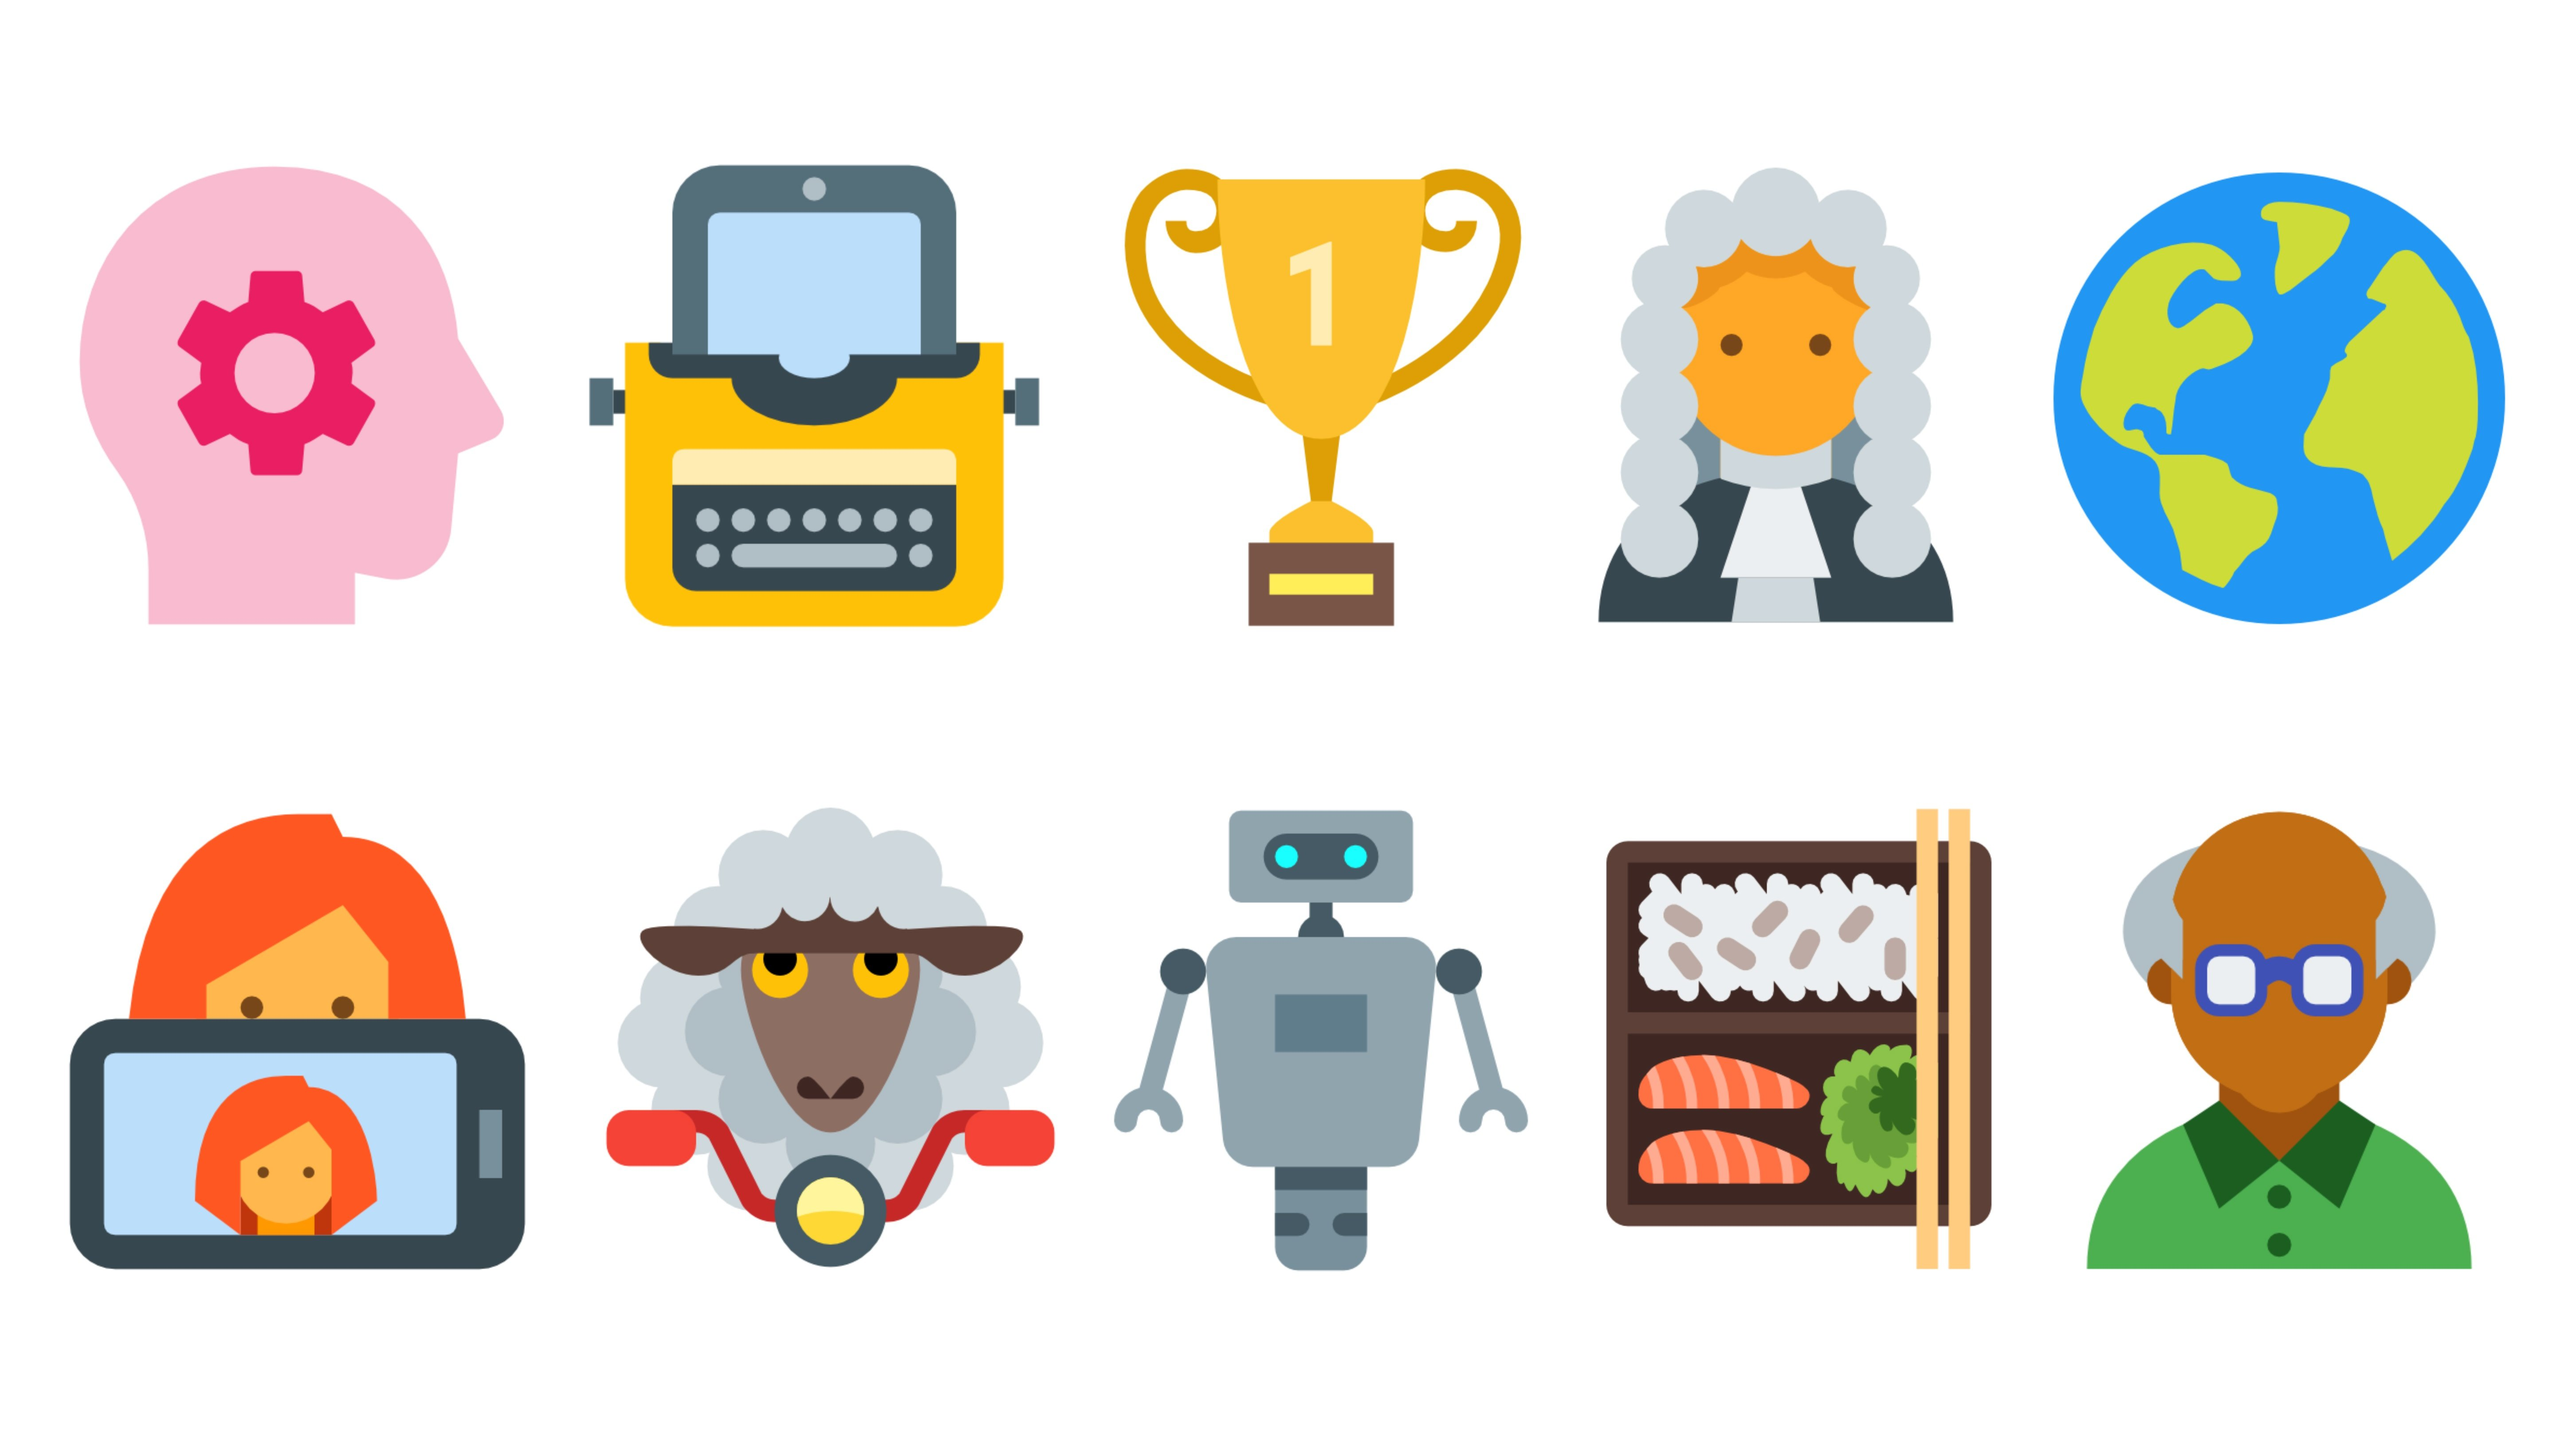 10 Free Clipart Images For Your Next Powerpoint